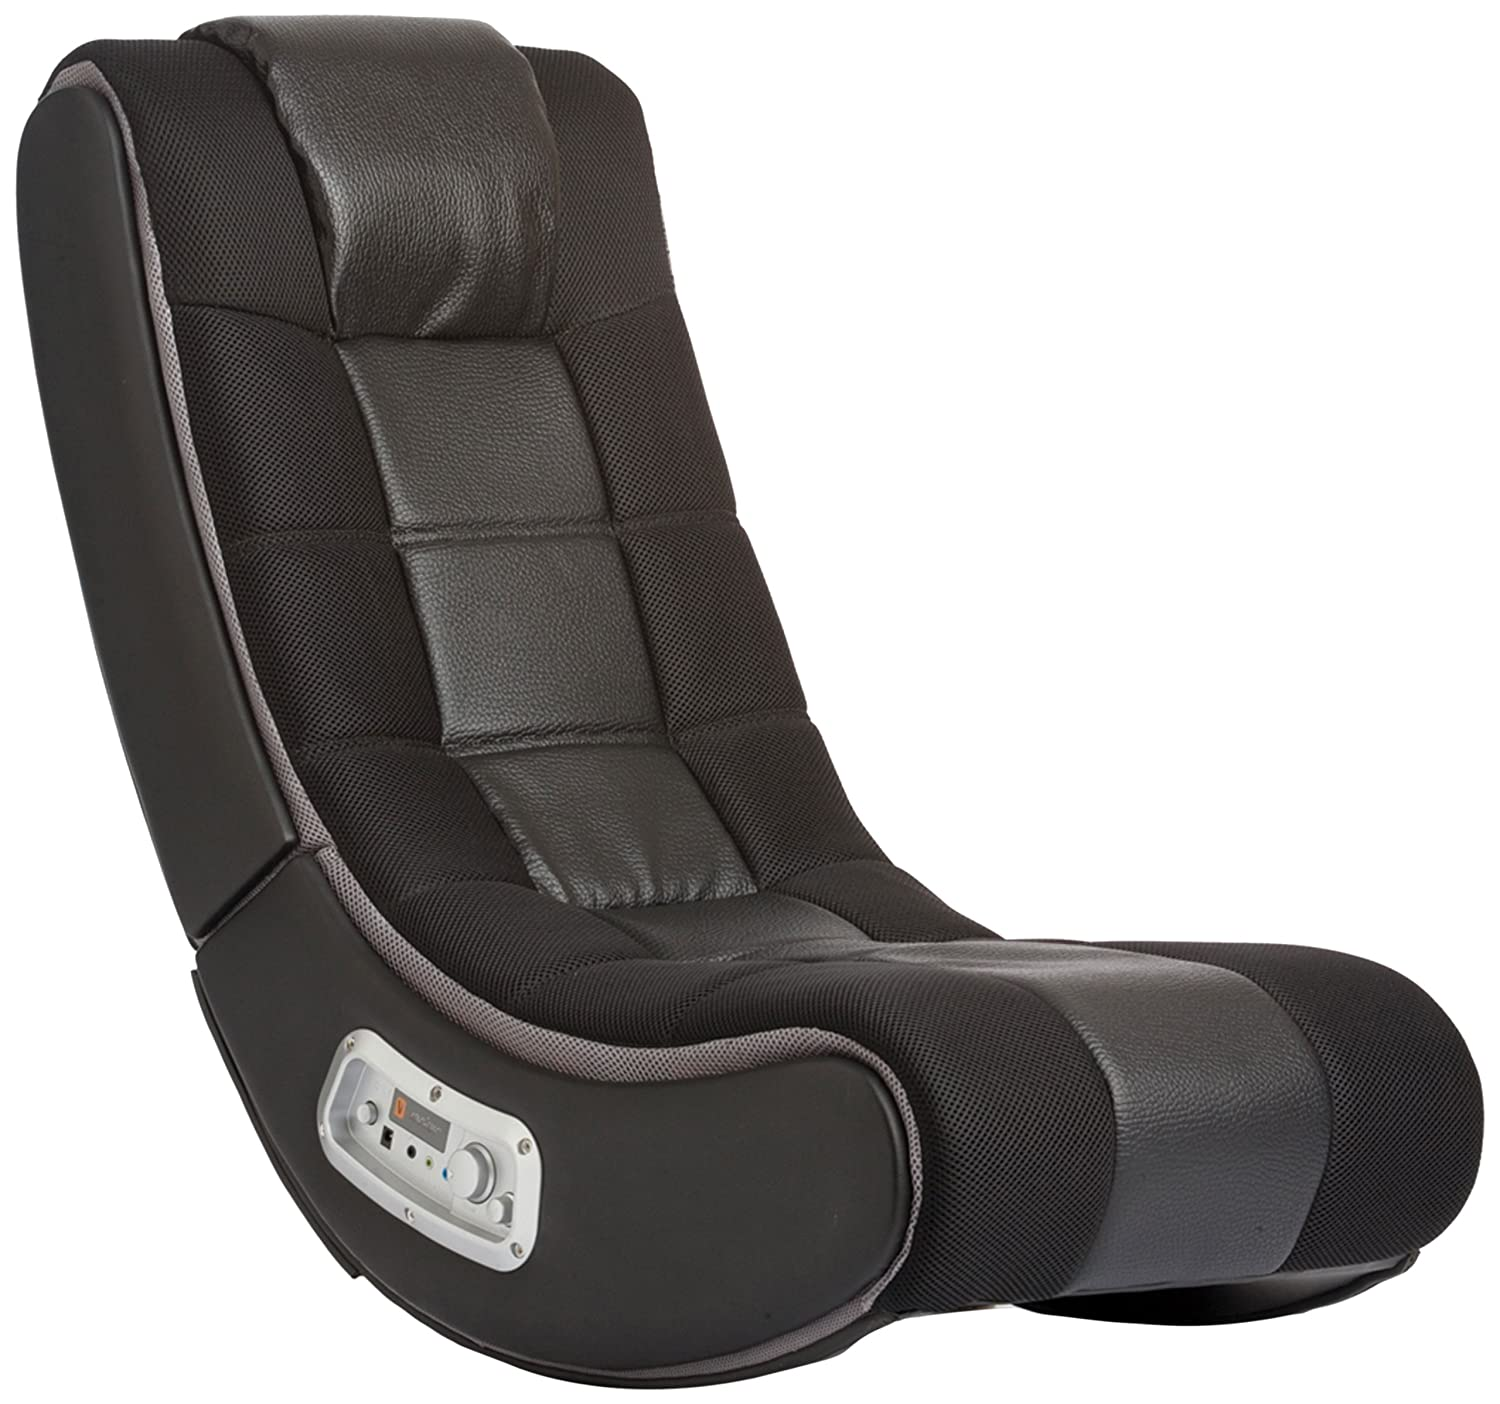 Best Gaming Chair Reviews 2016  Ultimate Buying Guide